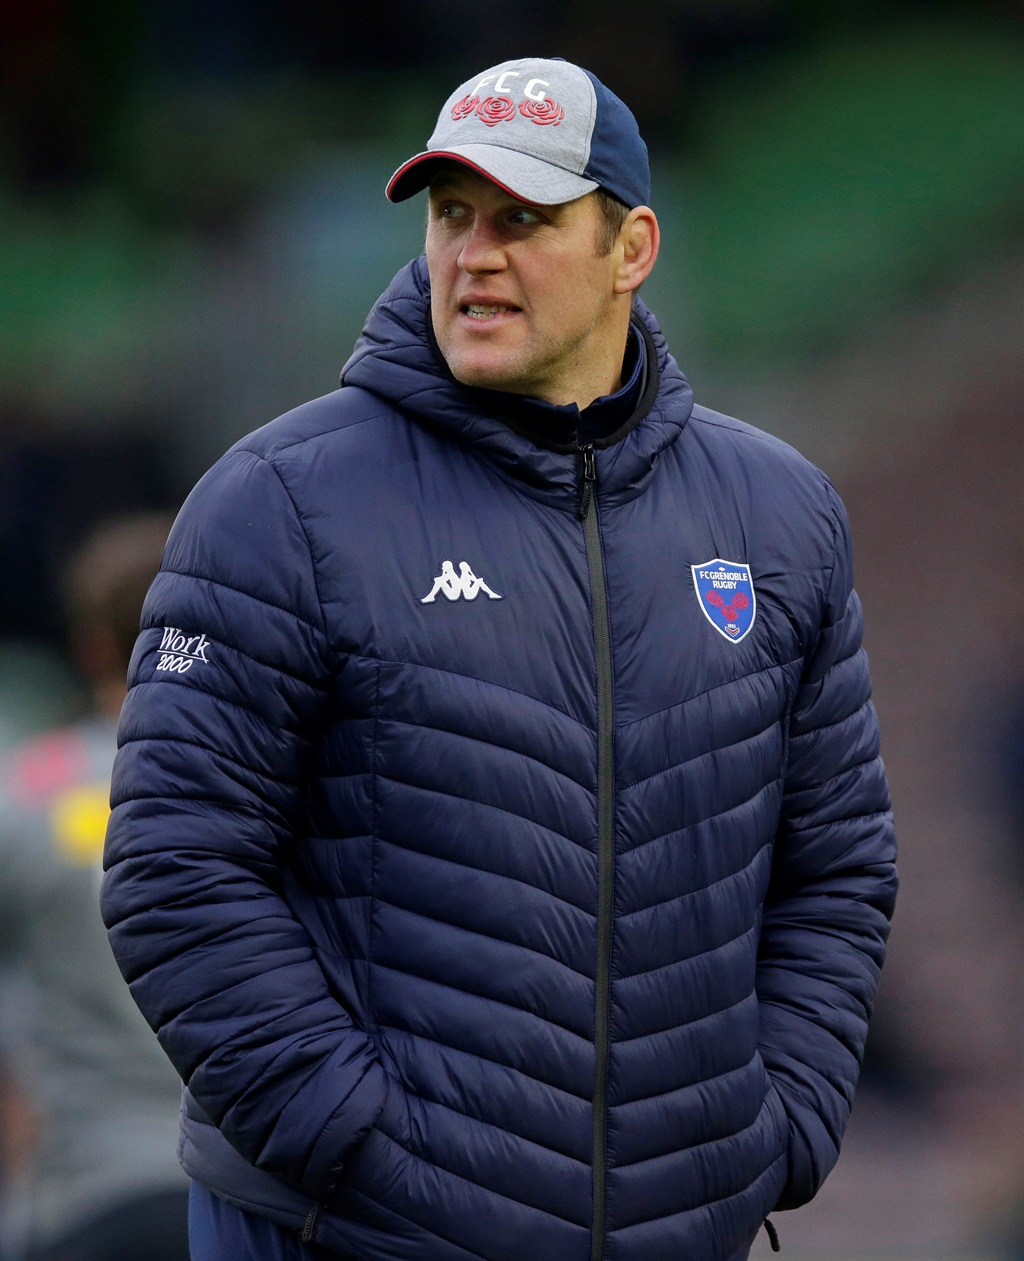 Dewald Senekal Rugby Analysis Stade Francais Grenoble Bayonne Agen Toulon